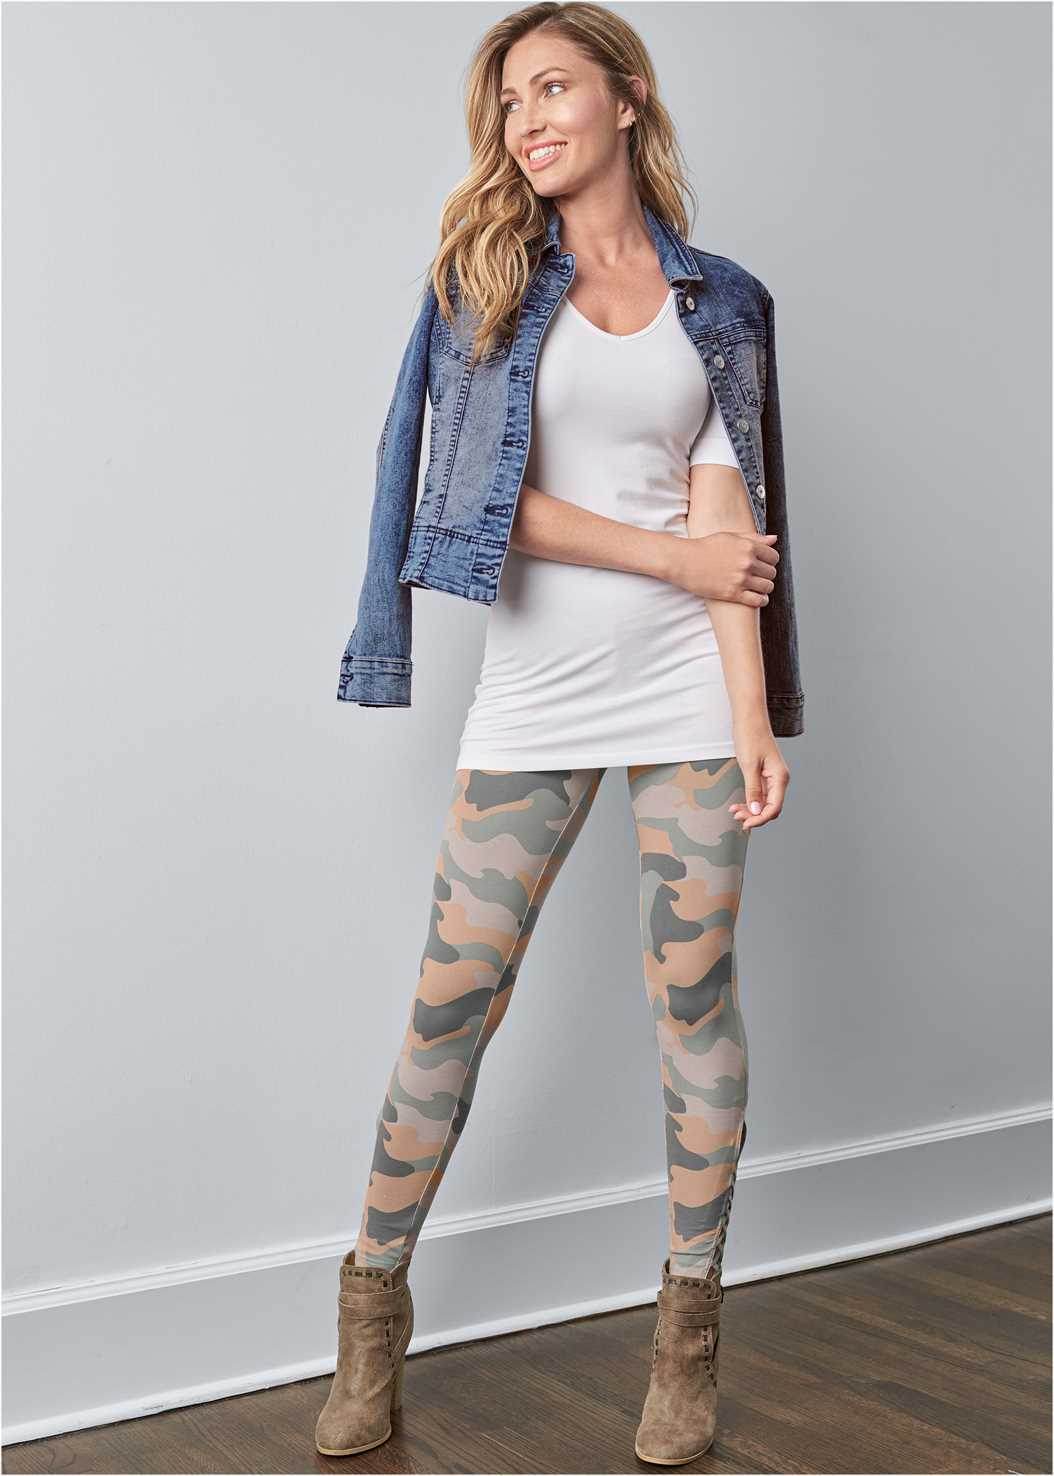 Ankle Detail Leggings,Long And Lean V-Neck Tee,Jean Jacket